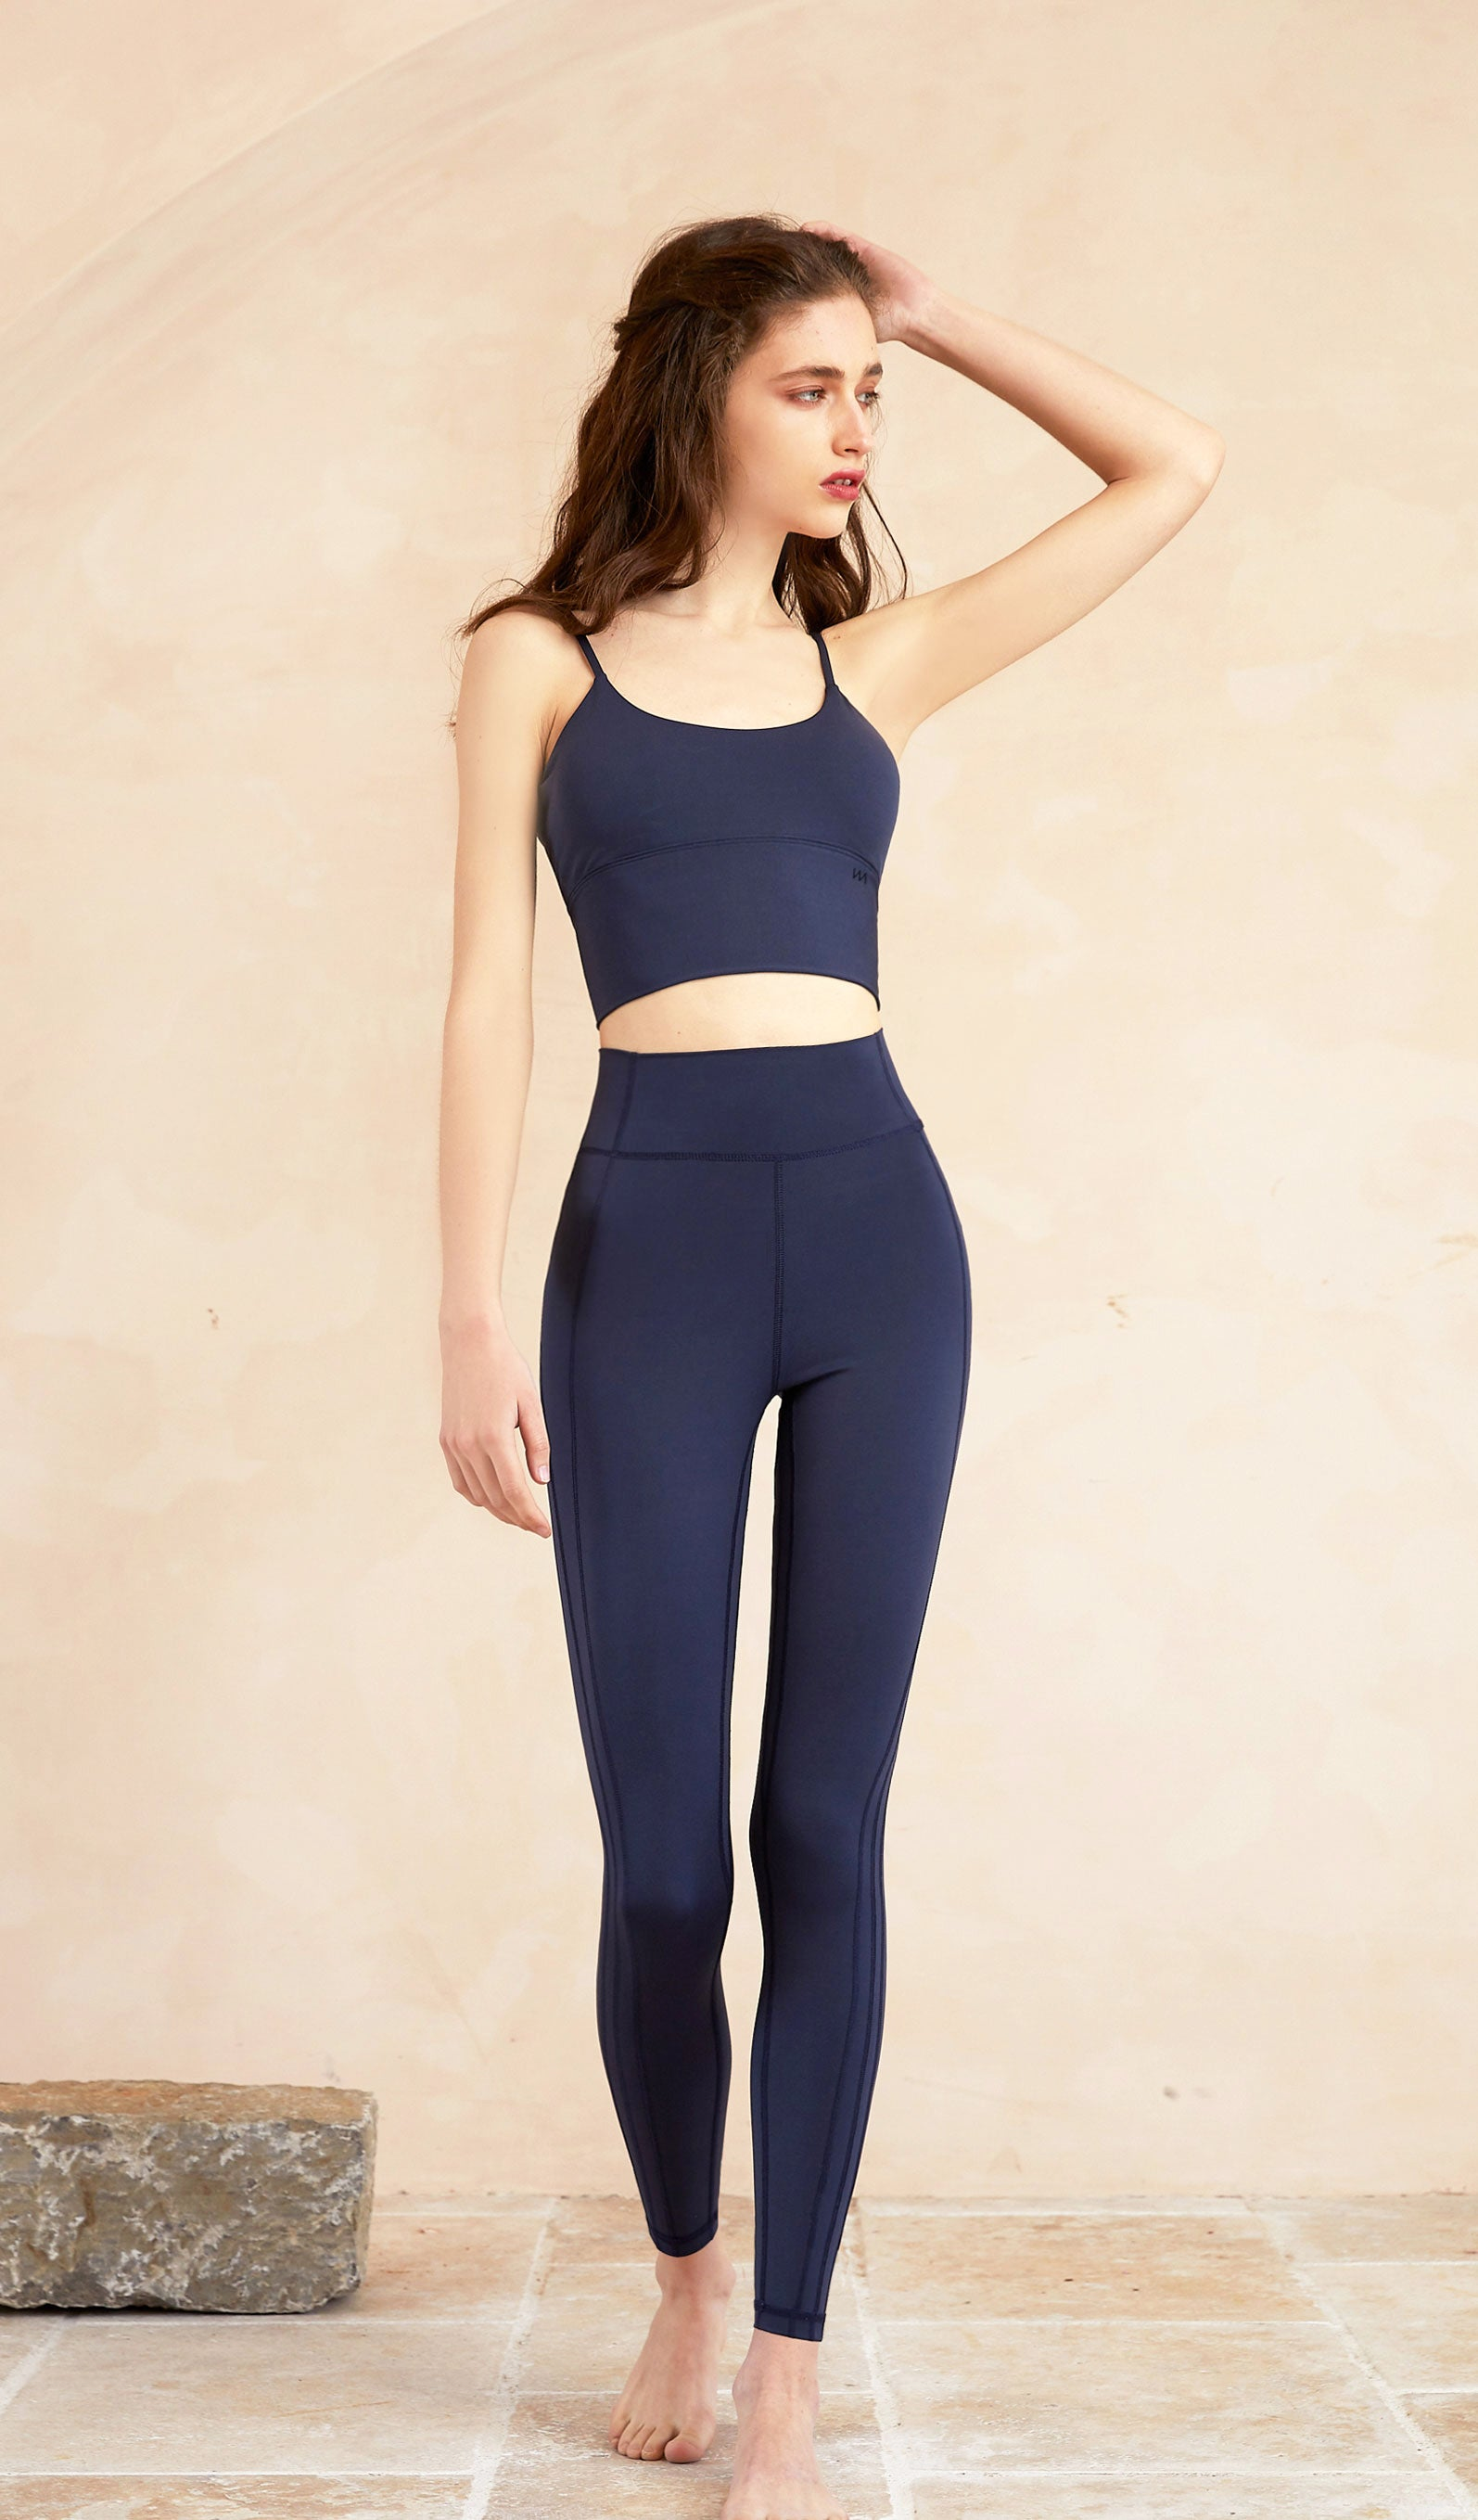 Yoga Top Ruby - Dark Blue